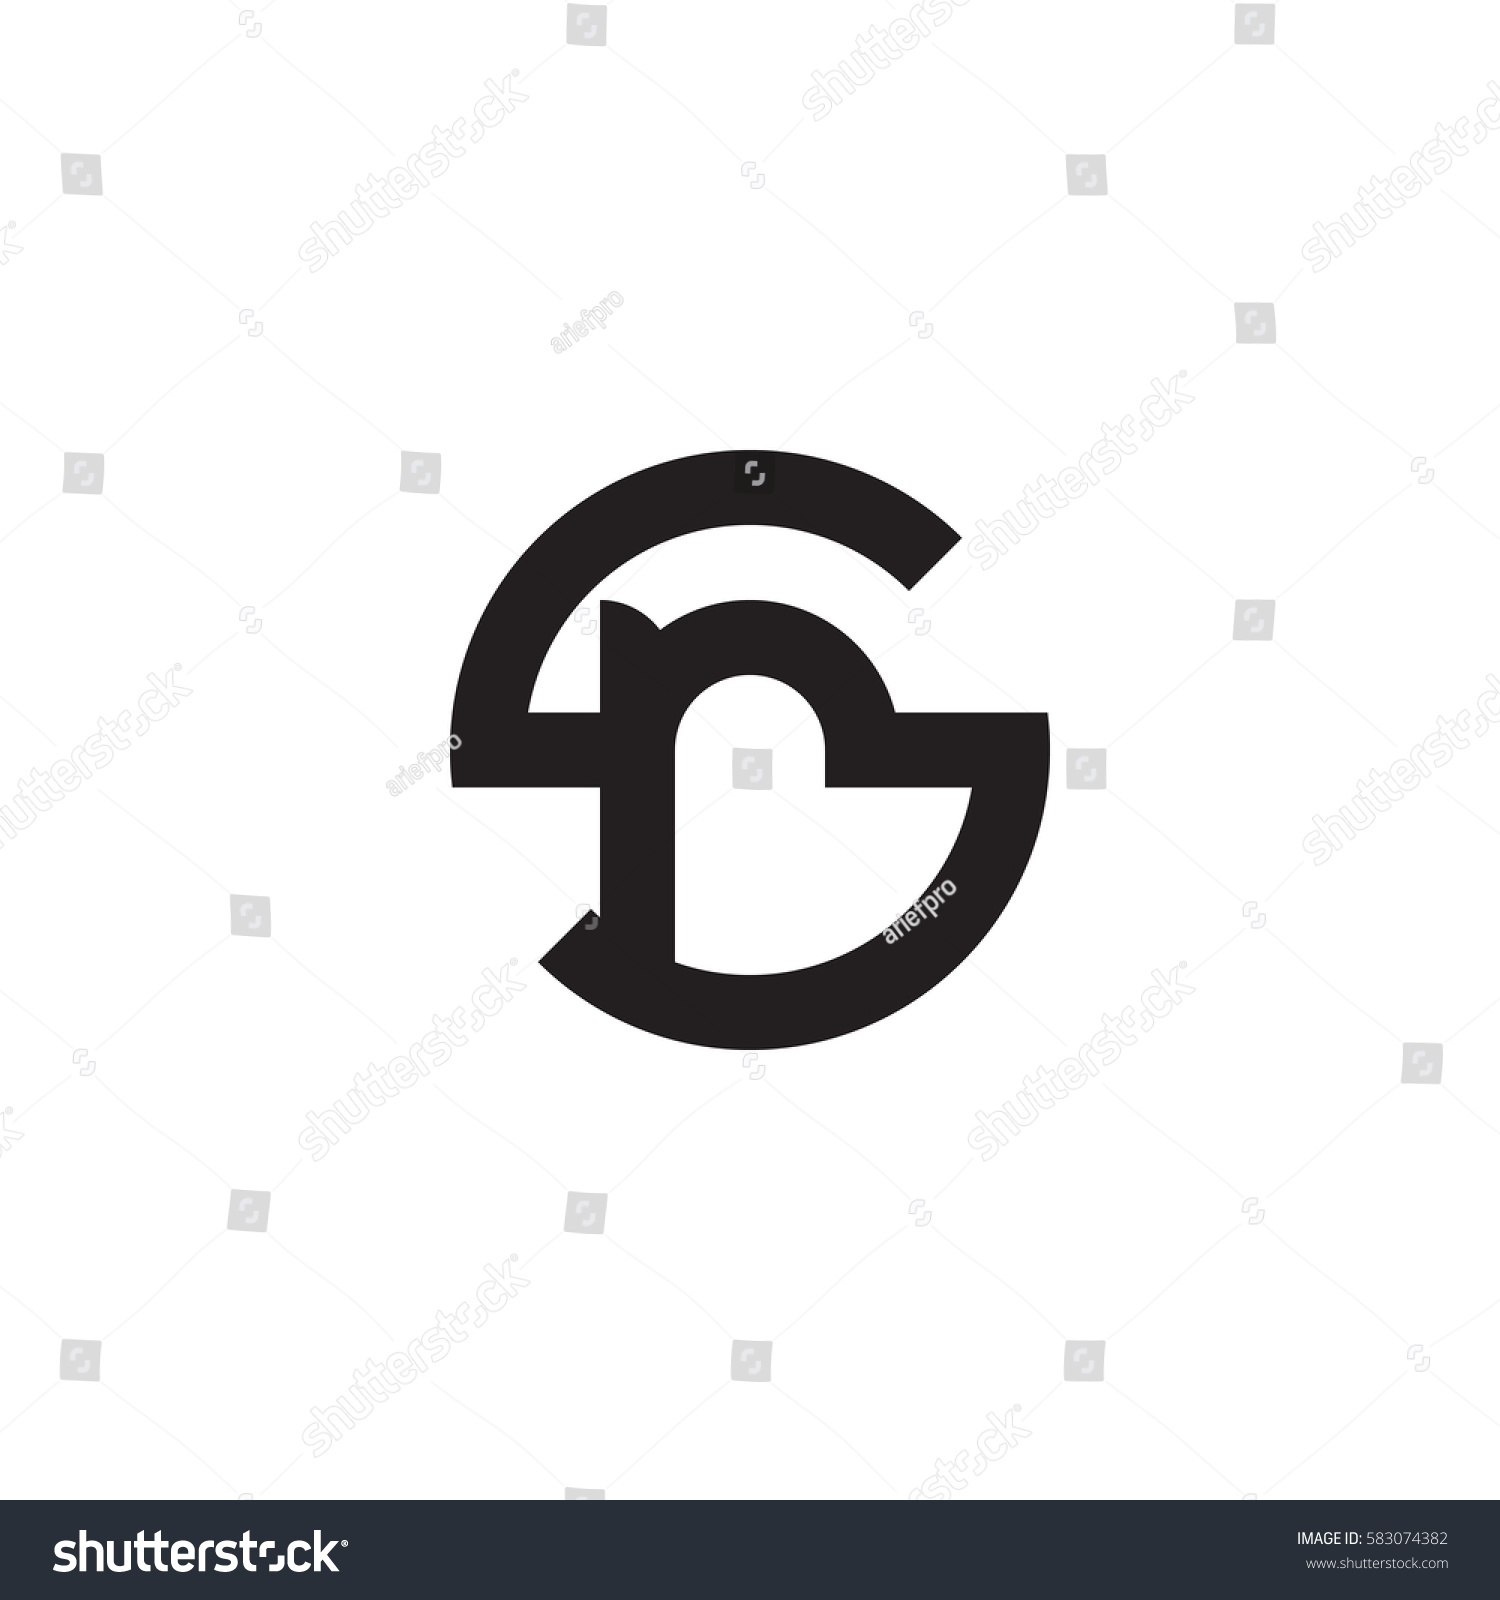 Initial letter logo sr rs r stock vector 583074382 shutterstock initial letter logo sr rs r inside s rounded lowercase black monogram buycottarizona Image collections